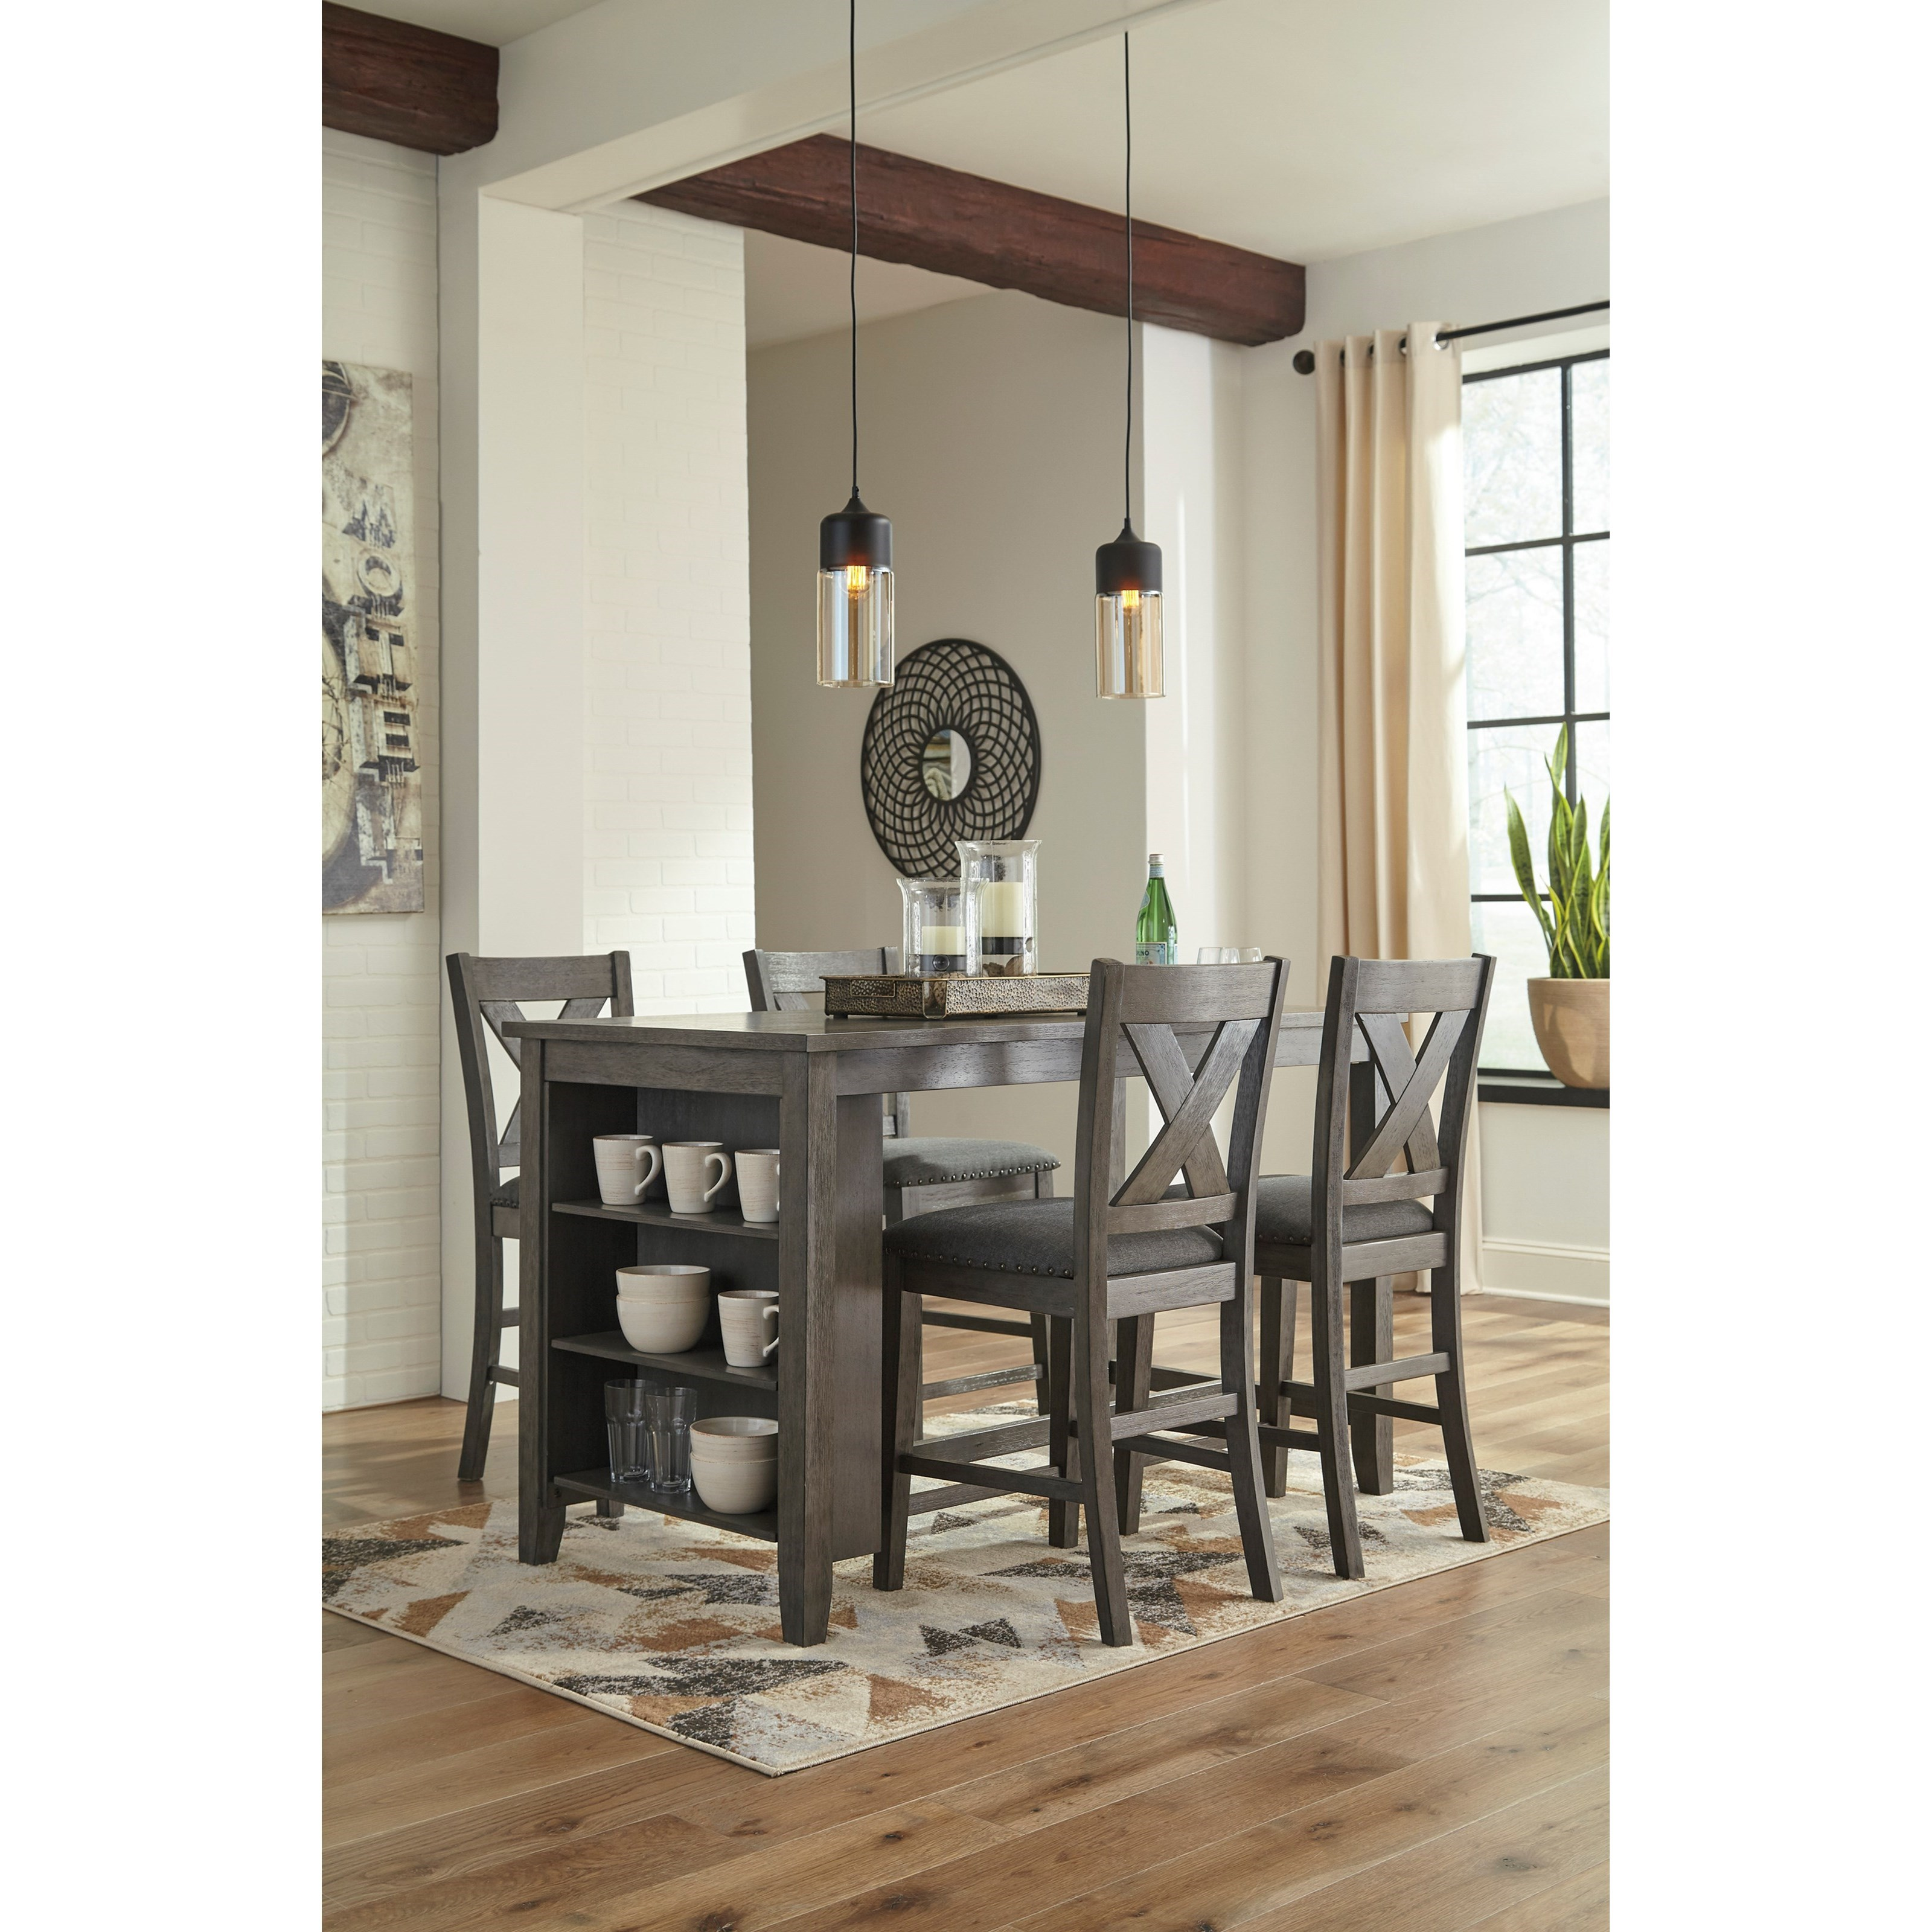 Ashley Furniture Superstore: Signature Design By Ashley Caitbrook Relaxed Vintage Five